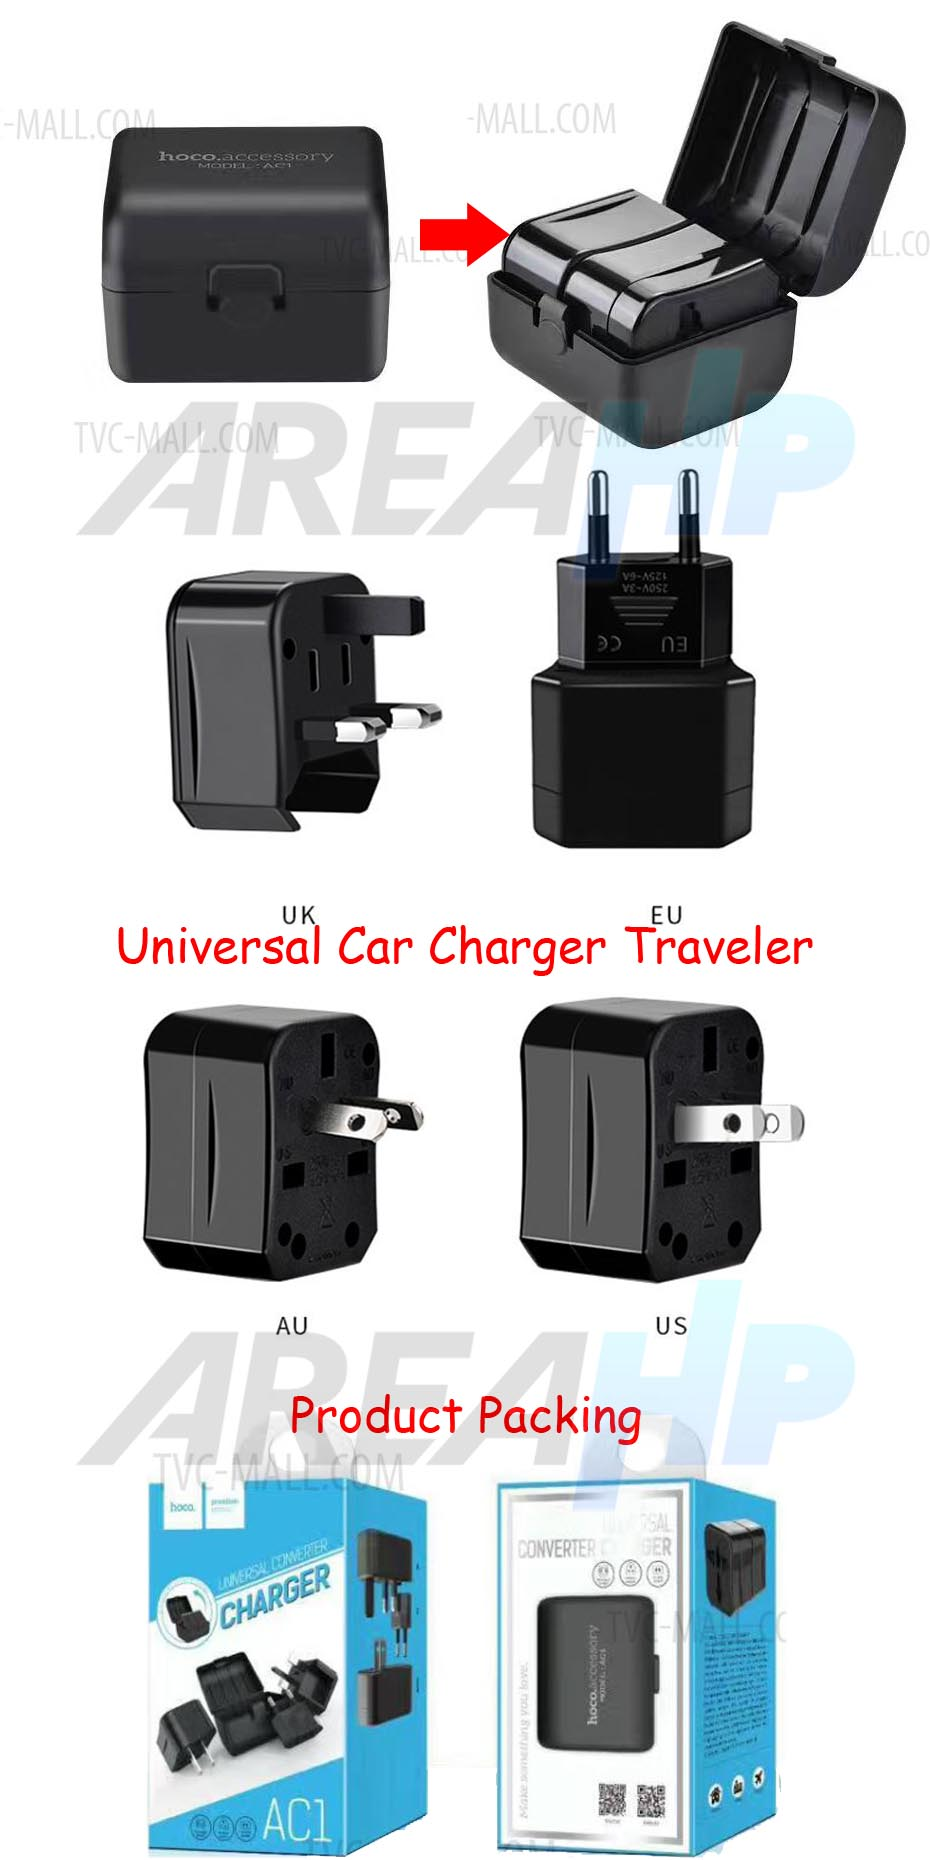 Hoco AC1 Universal Travel Socker Fast Charger USB 3A Overview